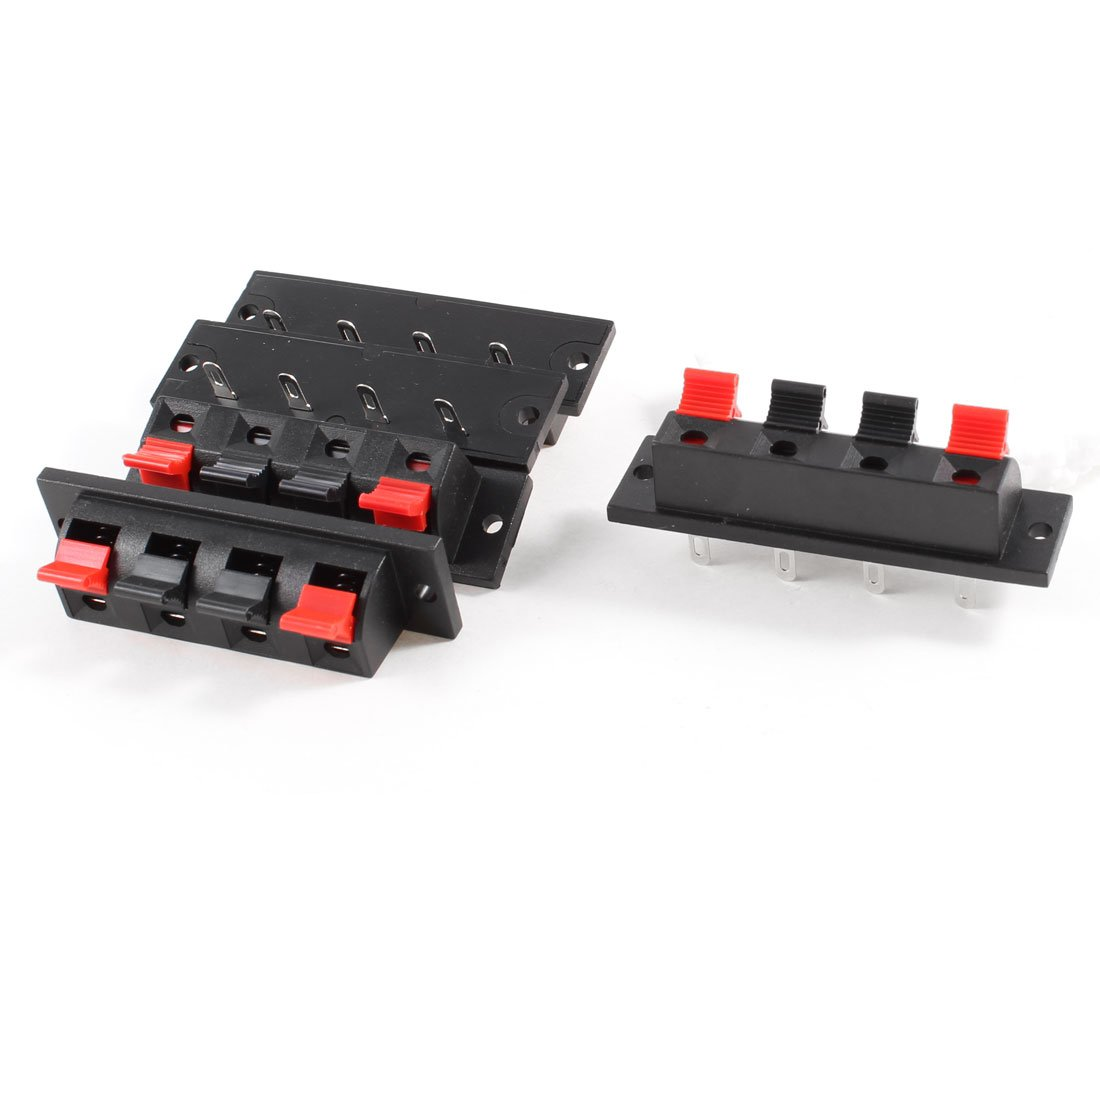 uxcell 5 Pcs 64mm x 18mm 4 Positions Push in Jack Spring Load Audio Speaker Terminals